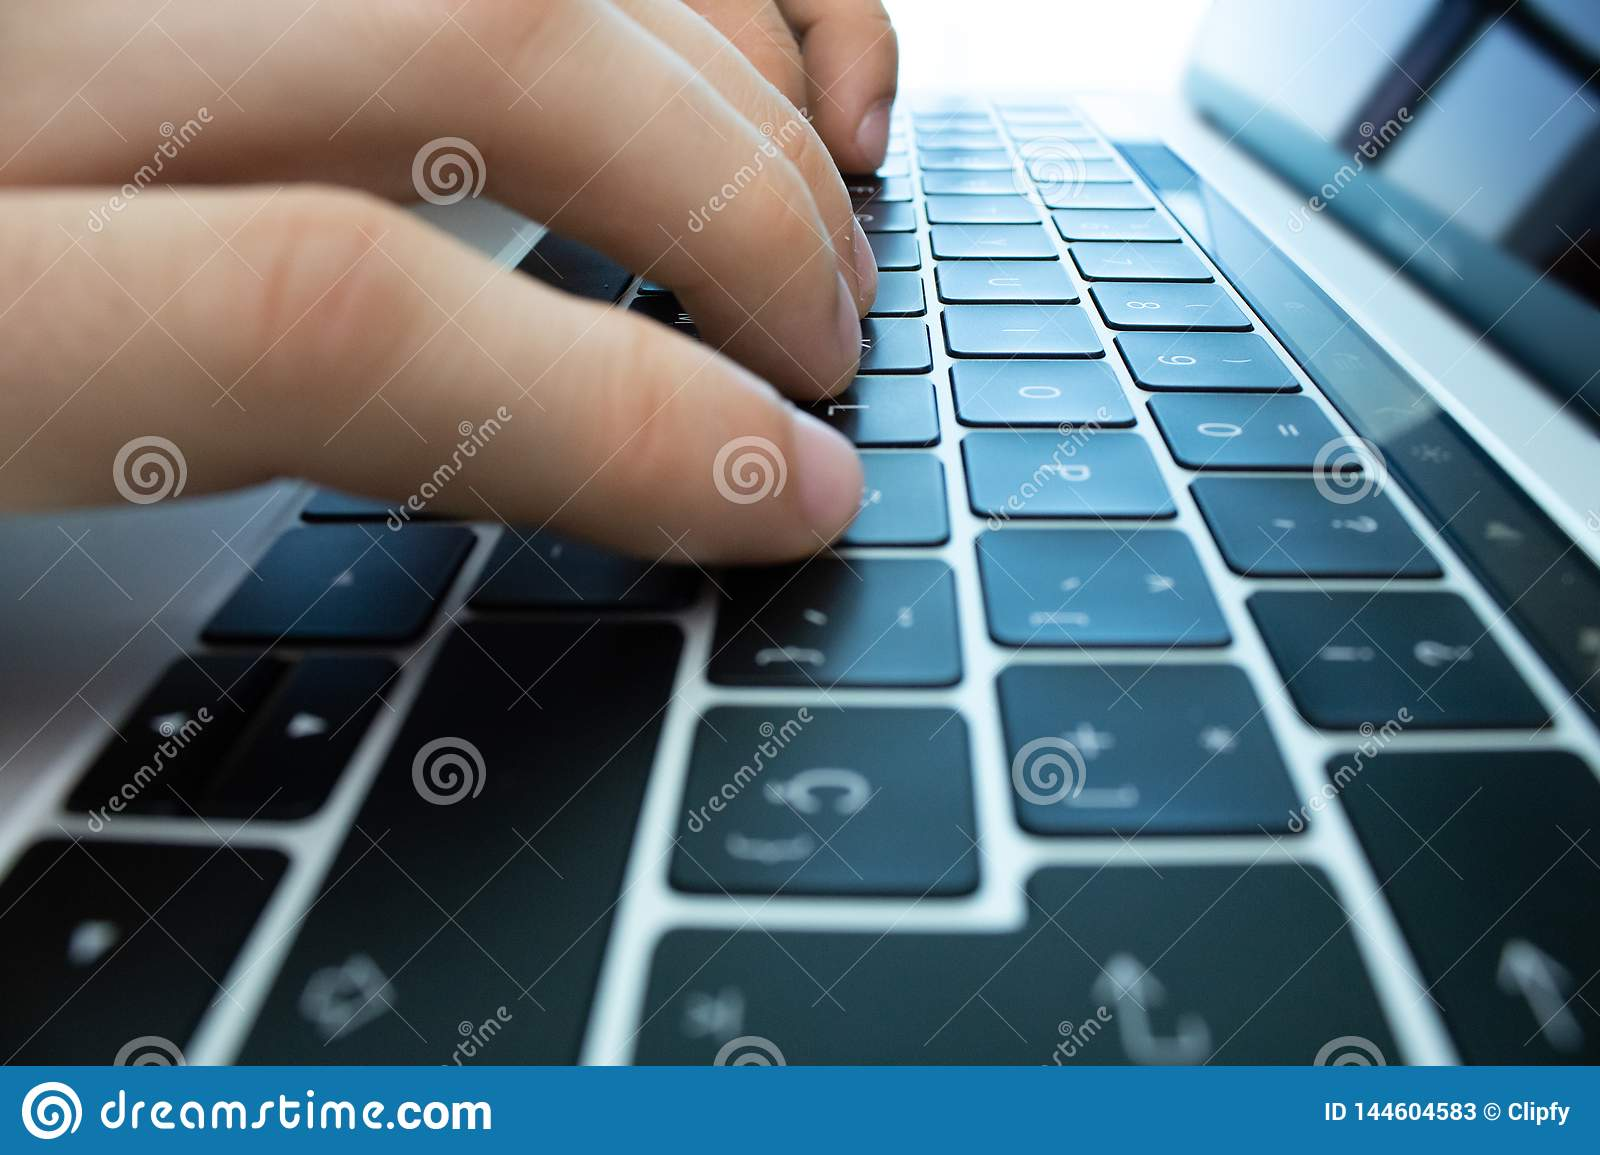 Hands using the keyboard and touchpad of a laptop computer on a white table